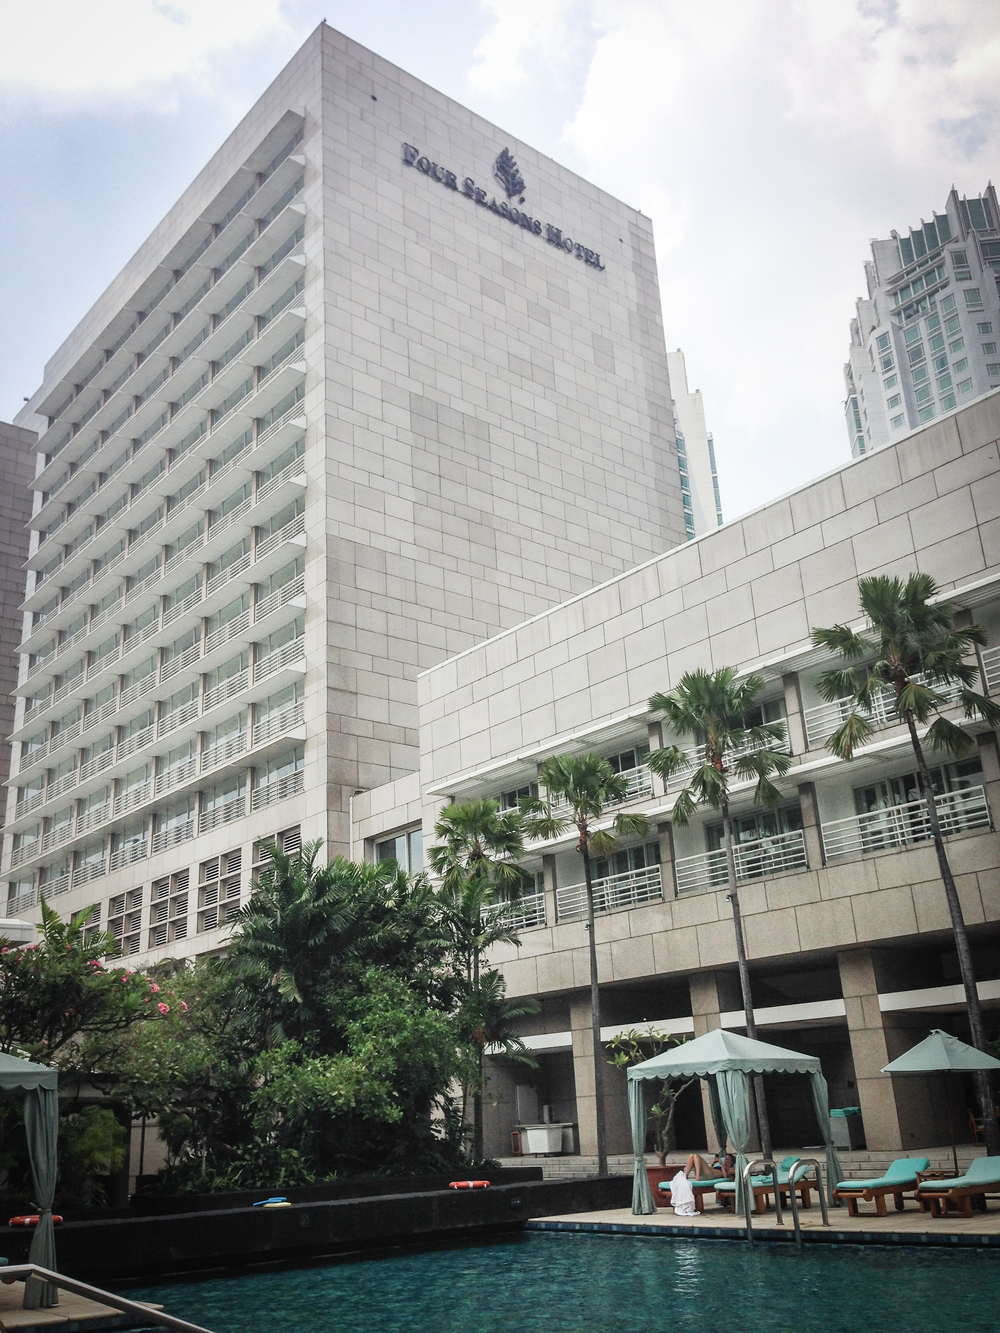 During our time in Jakarta, we stayed at the Four Seasons Hotel. It was a very comforting place to stay and helped balance the initial discomfort of navigating in a foreign country. It also provided an intense contrast with our future room and board arrangements at Camp Tuanan.